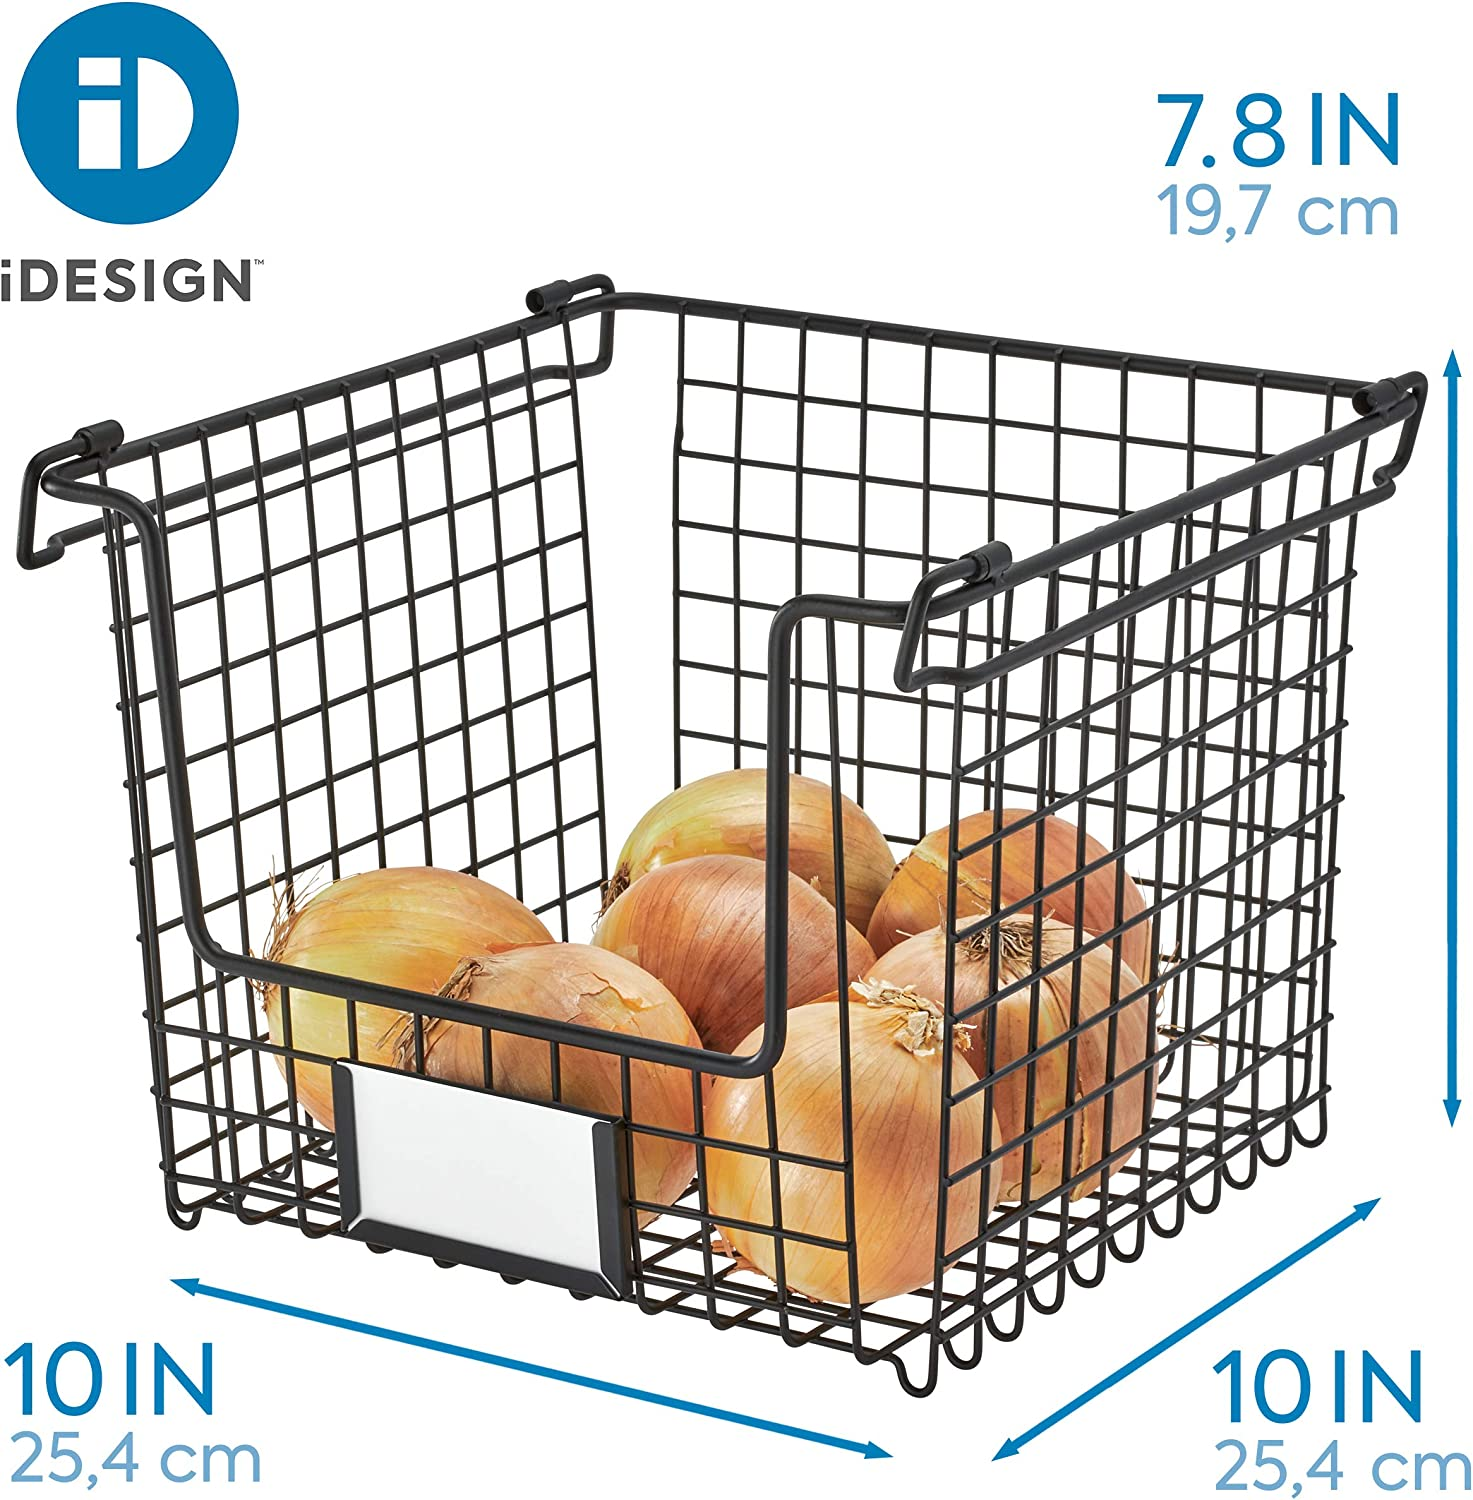 and Desk Organization 10 x 10 x 7.75 iDesign /Classico/Stackable Storage Basket with Handles for Pantry Bathroom Kitchen Matte Black Countertop